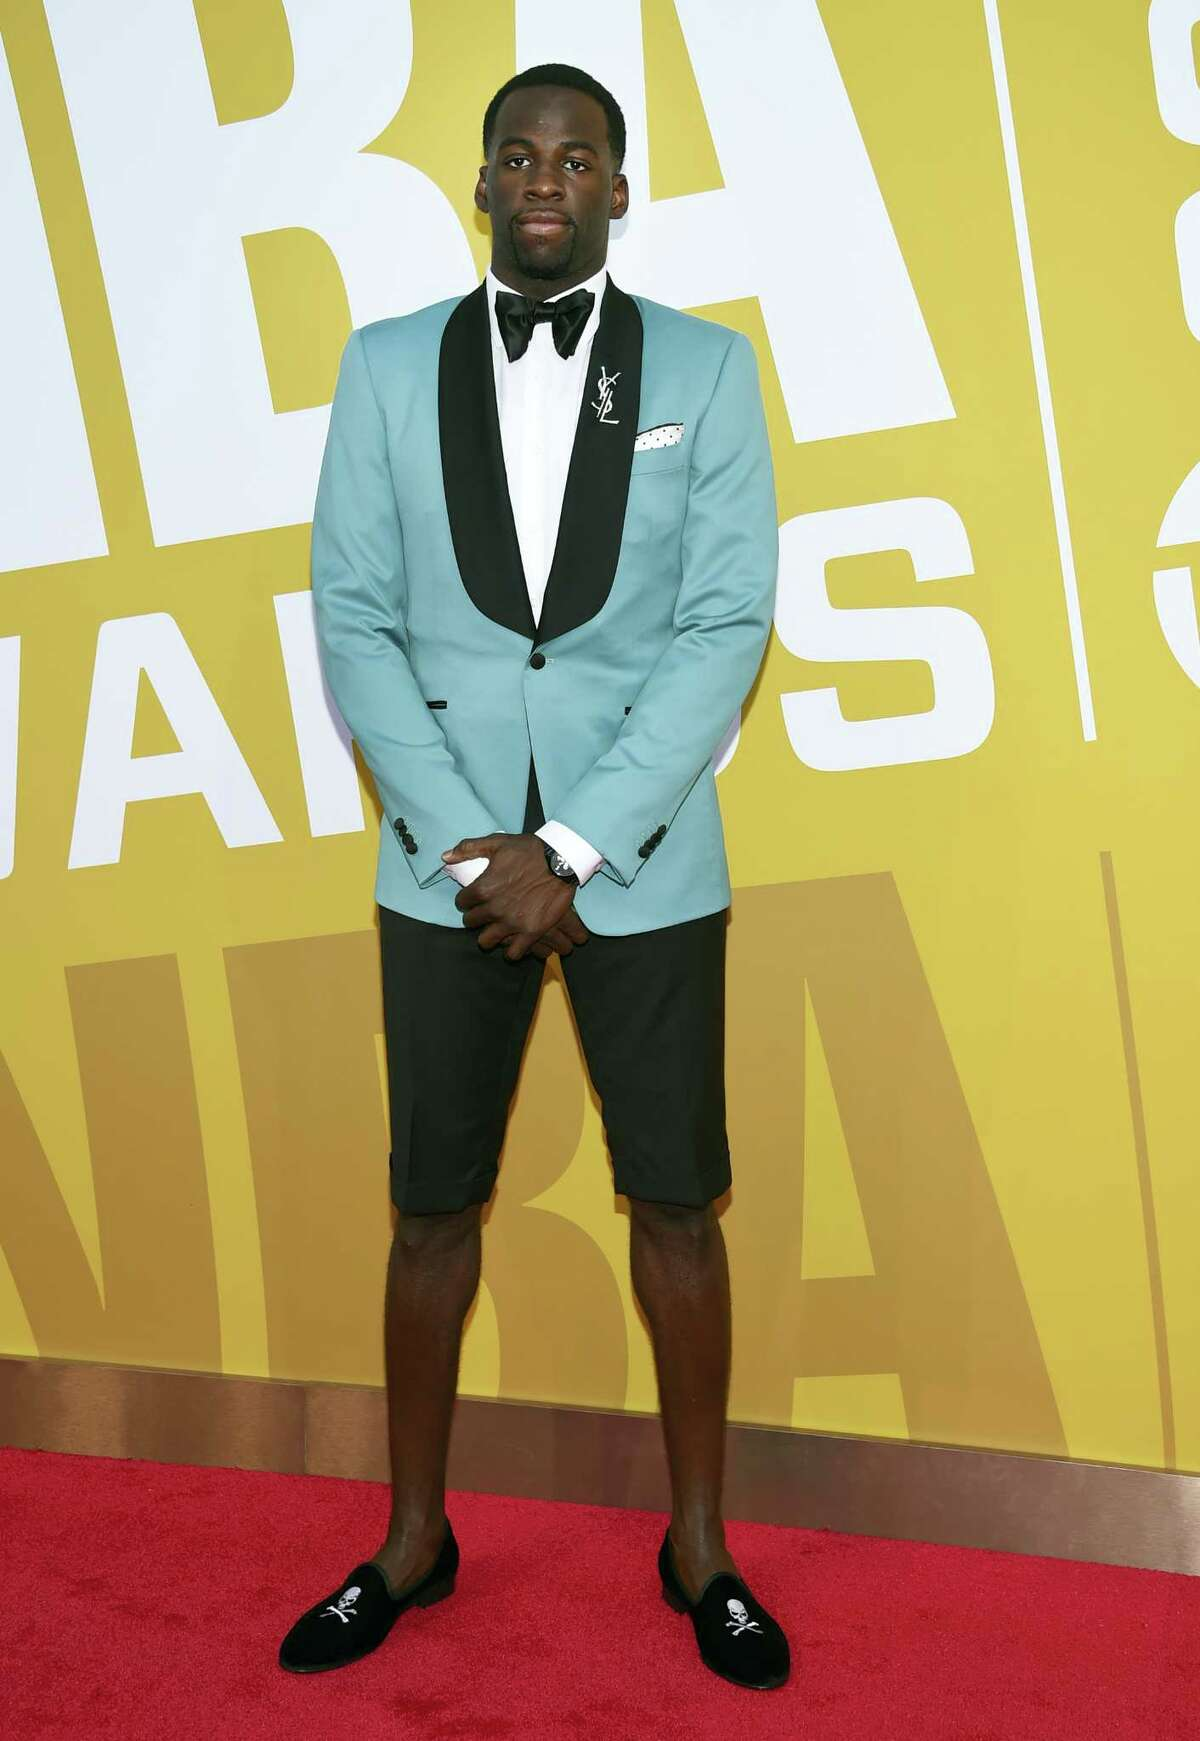 NBA player Draymond Green, of the Golden State Warriors, arrives at the NBA Awards at Basketball City at Pier 36 on Monday, June 26, 2017, in New York. (Photo by Evan Agostini/Invision/AP)